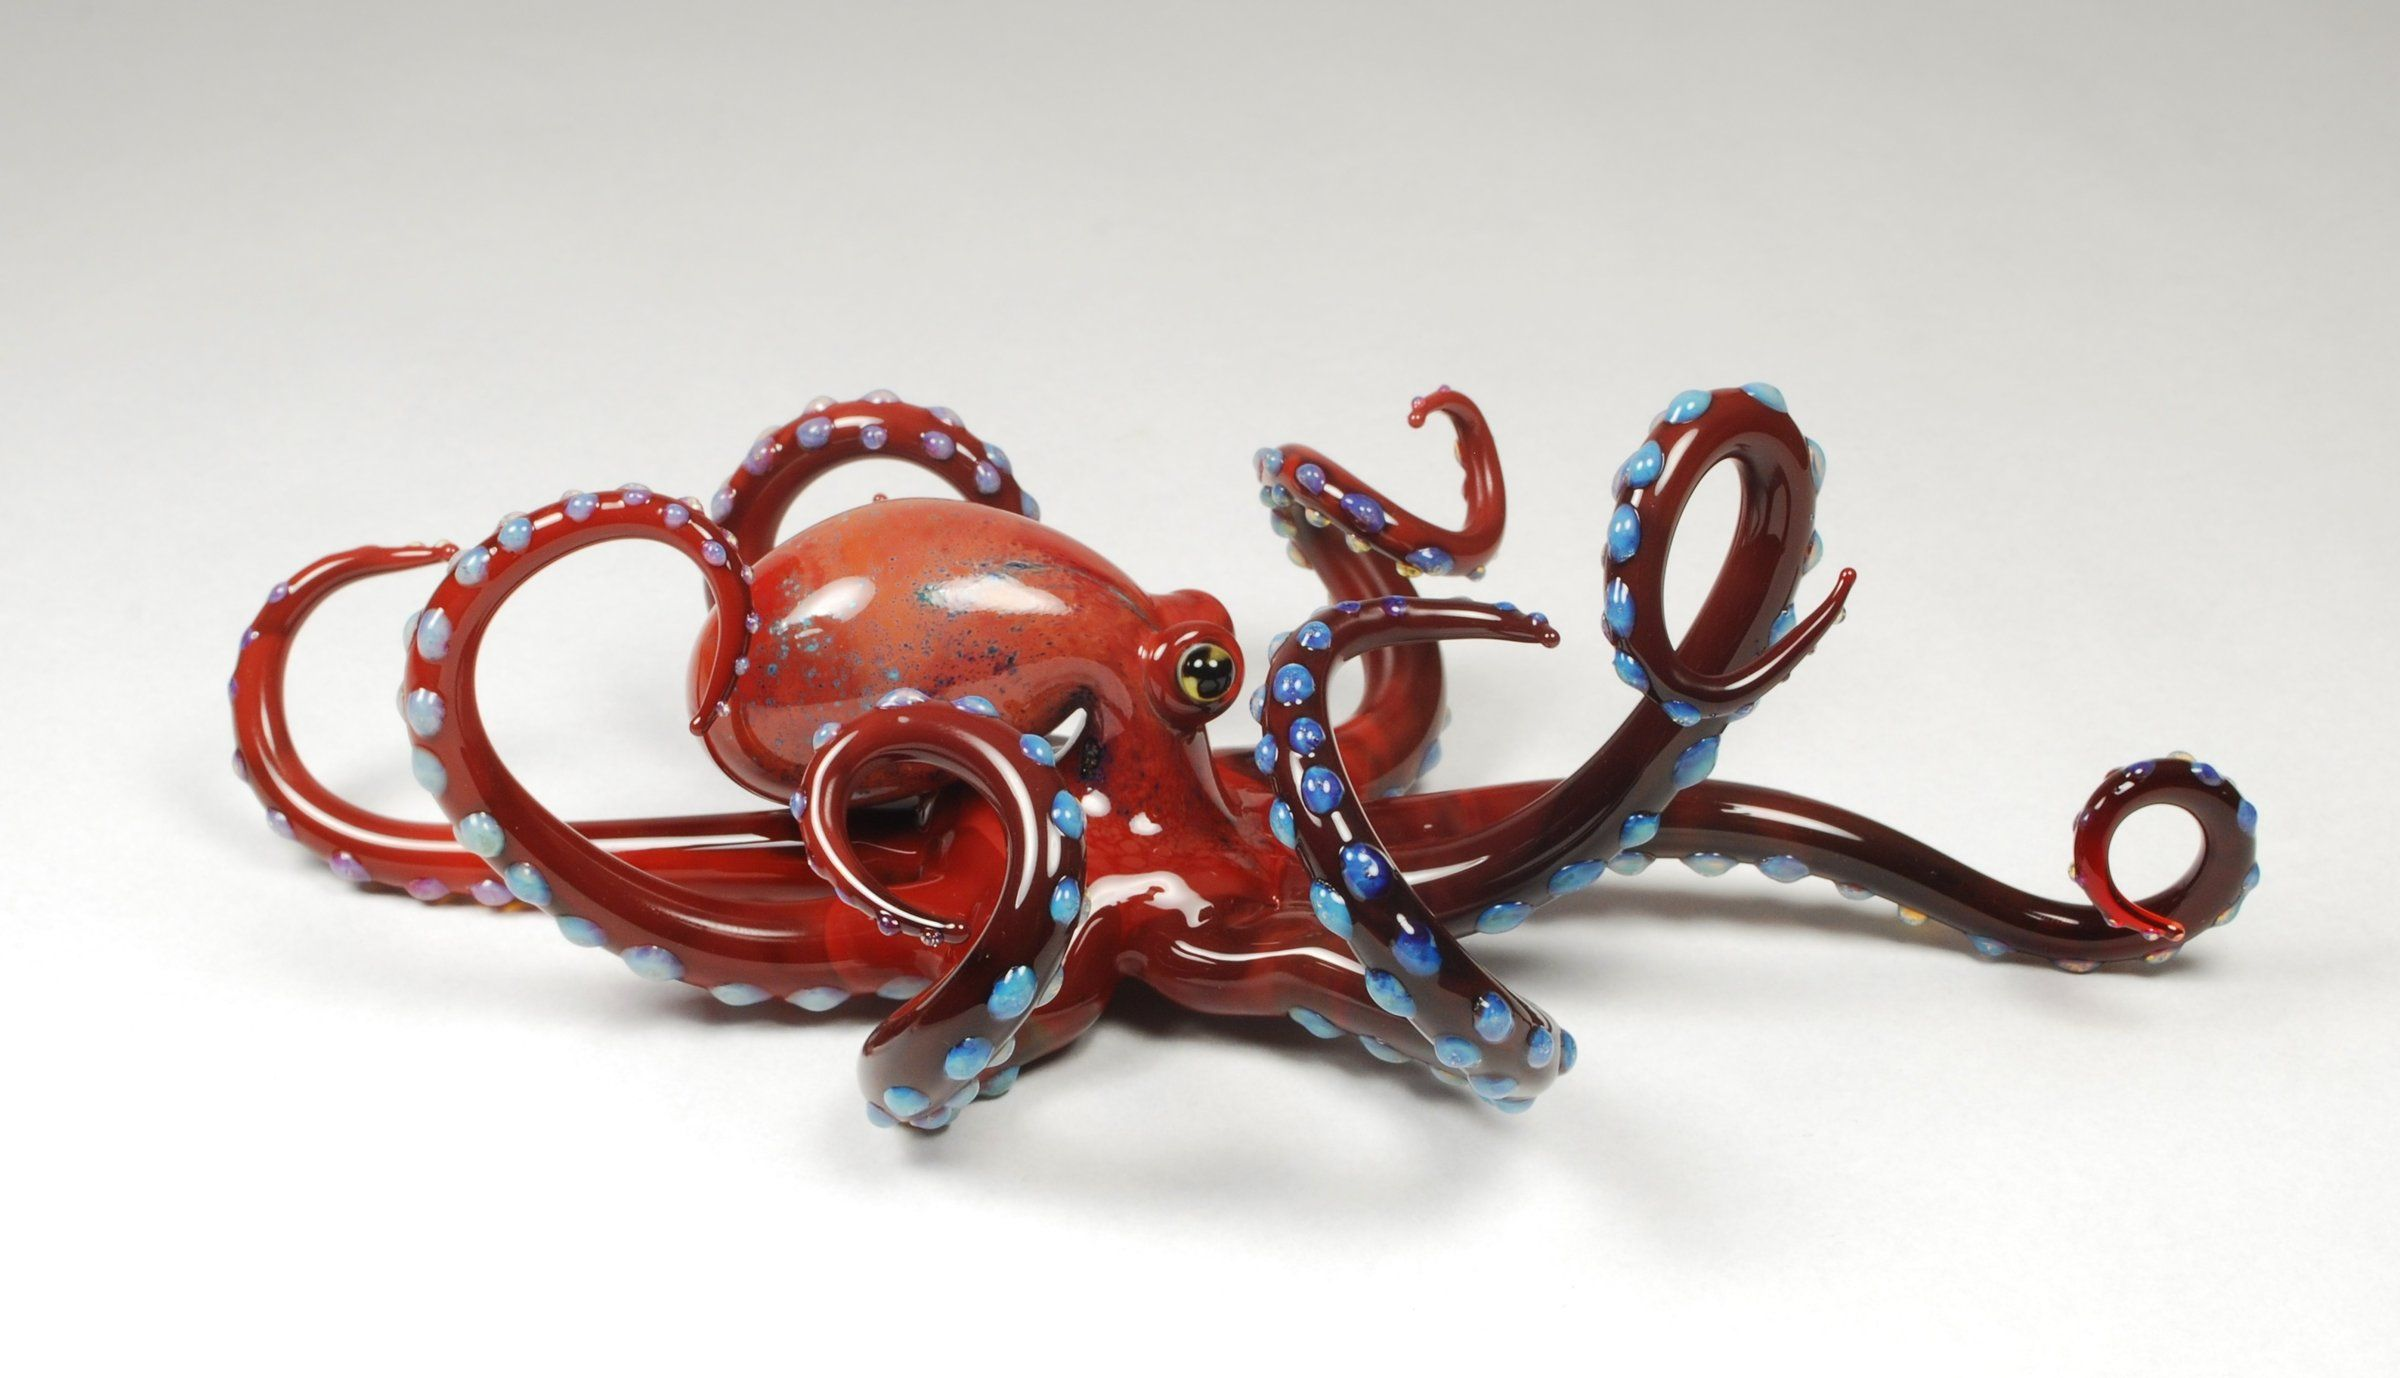 Octopus Glasses Red Octopus Art Glass Sculpture Created Artist By Jeremy